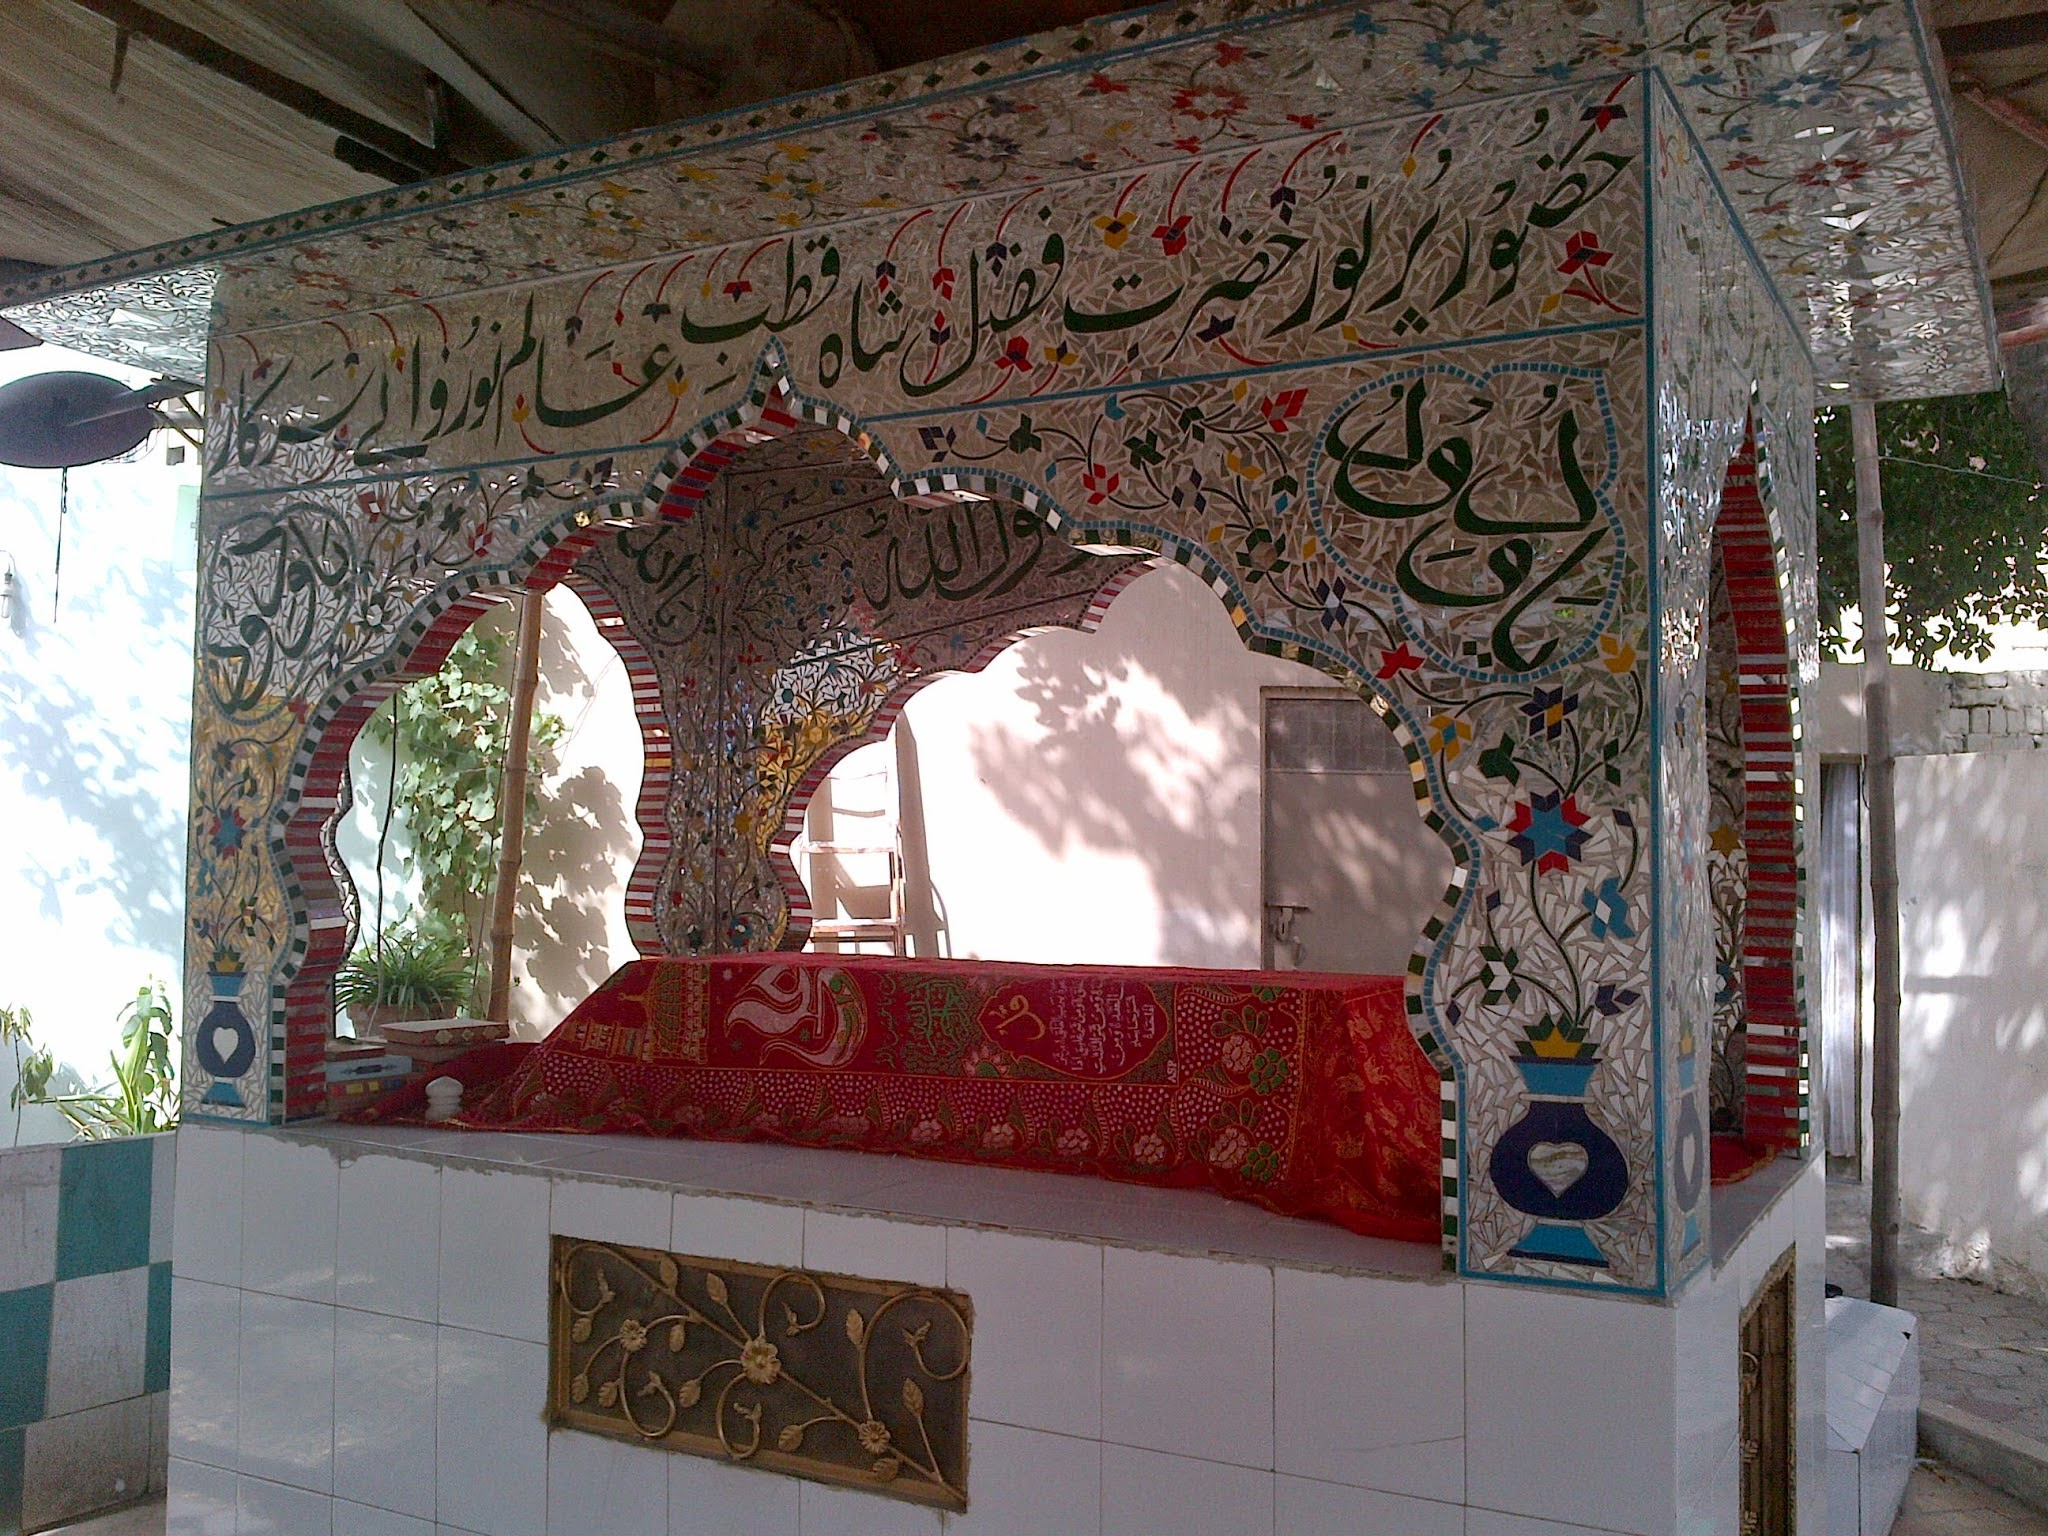 Tomb of Hazrat Fazal Shah, Noor Waley